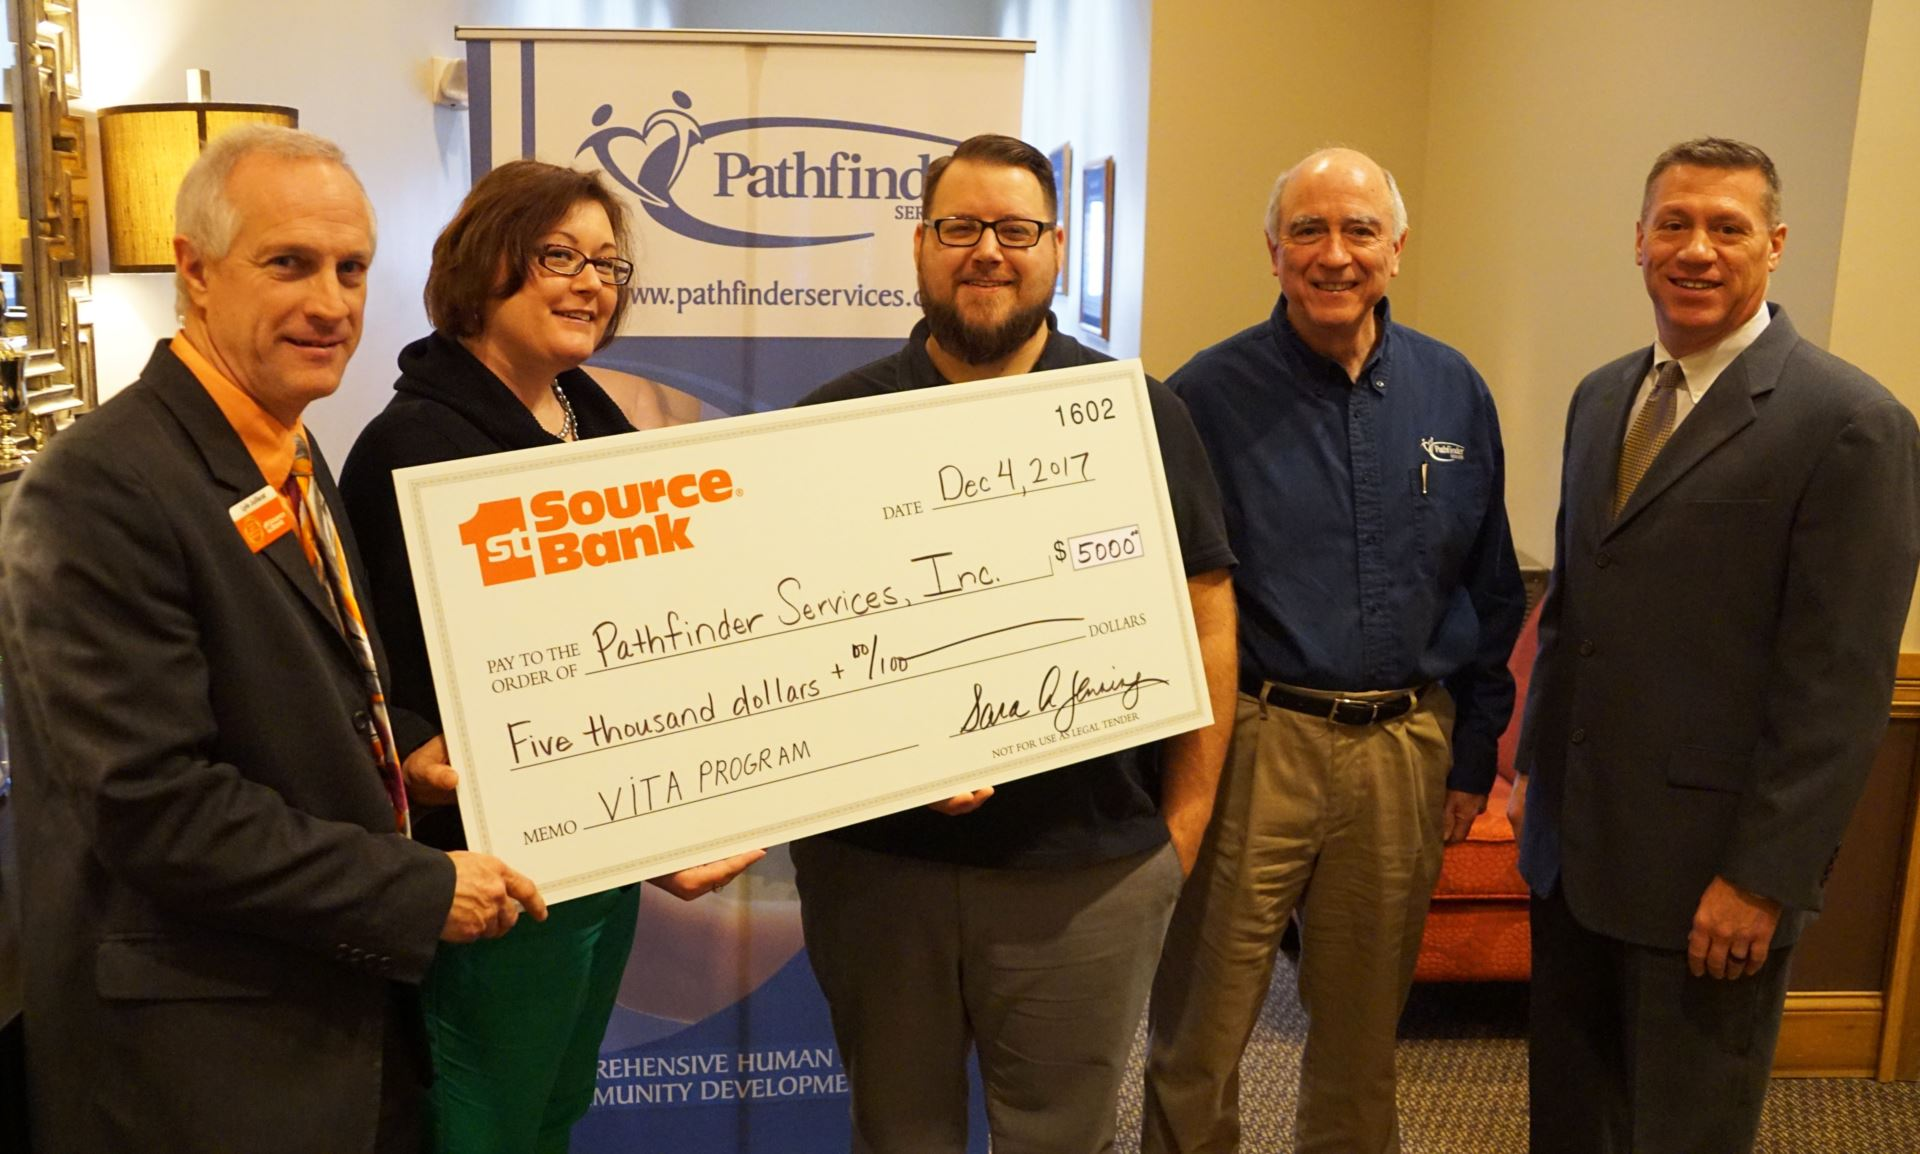 Huntington bank routing number lansing mi - 1st Source Donation Supports Pathfinder Services Inc